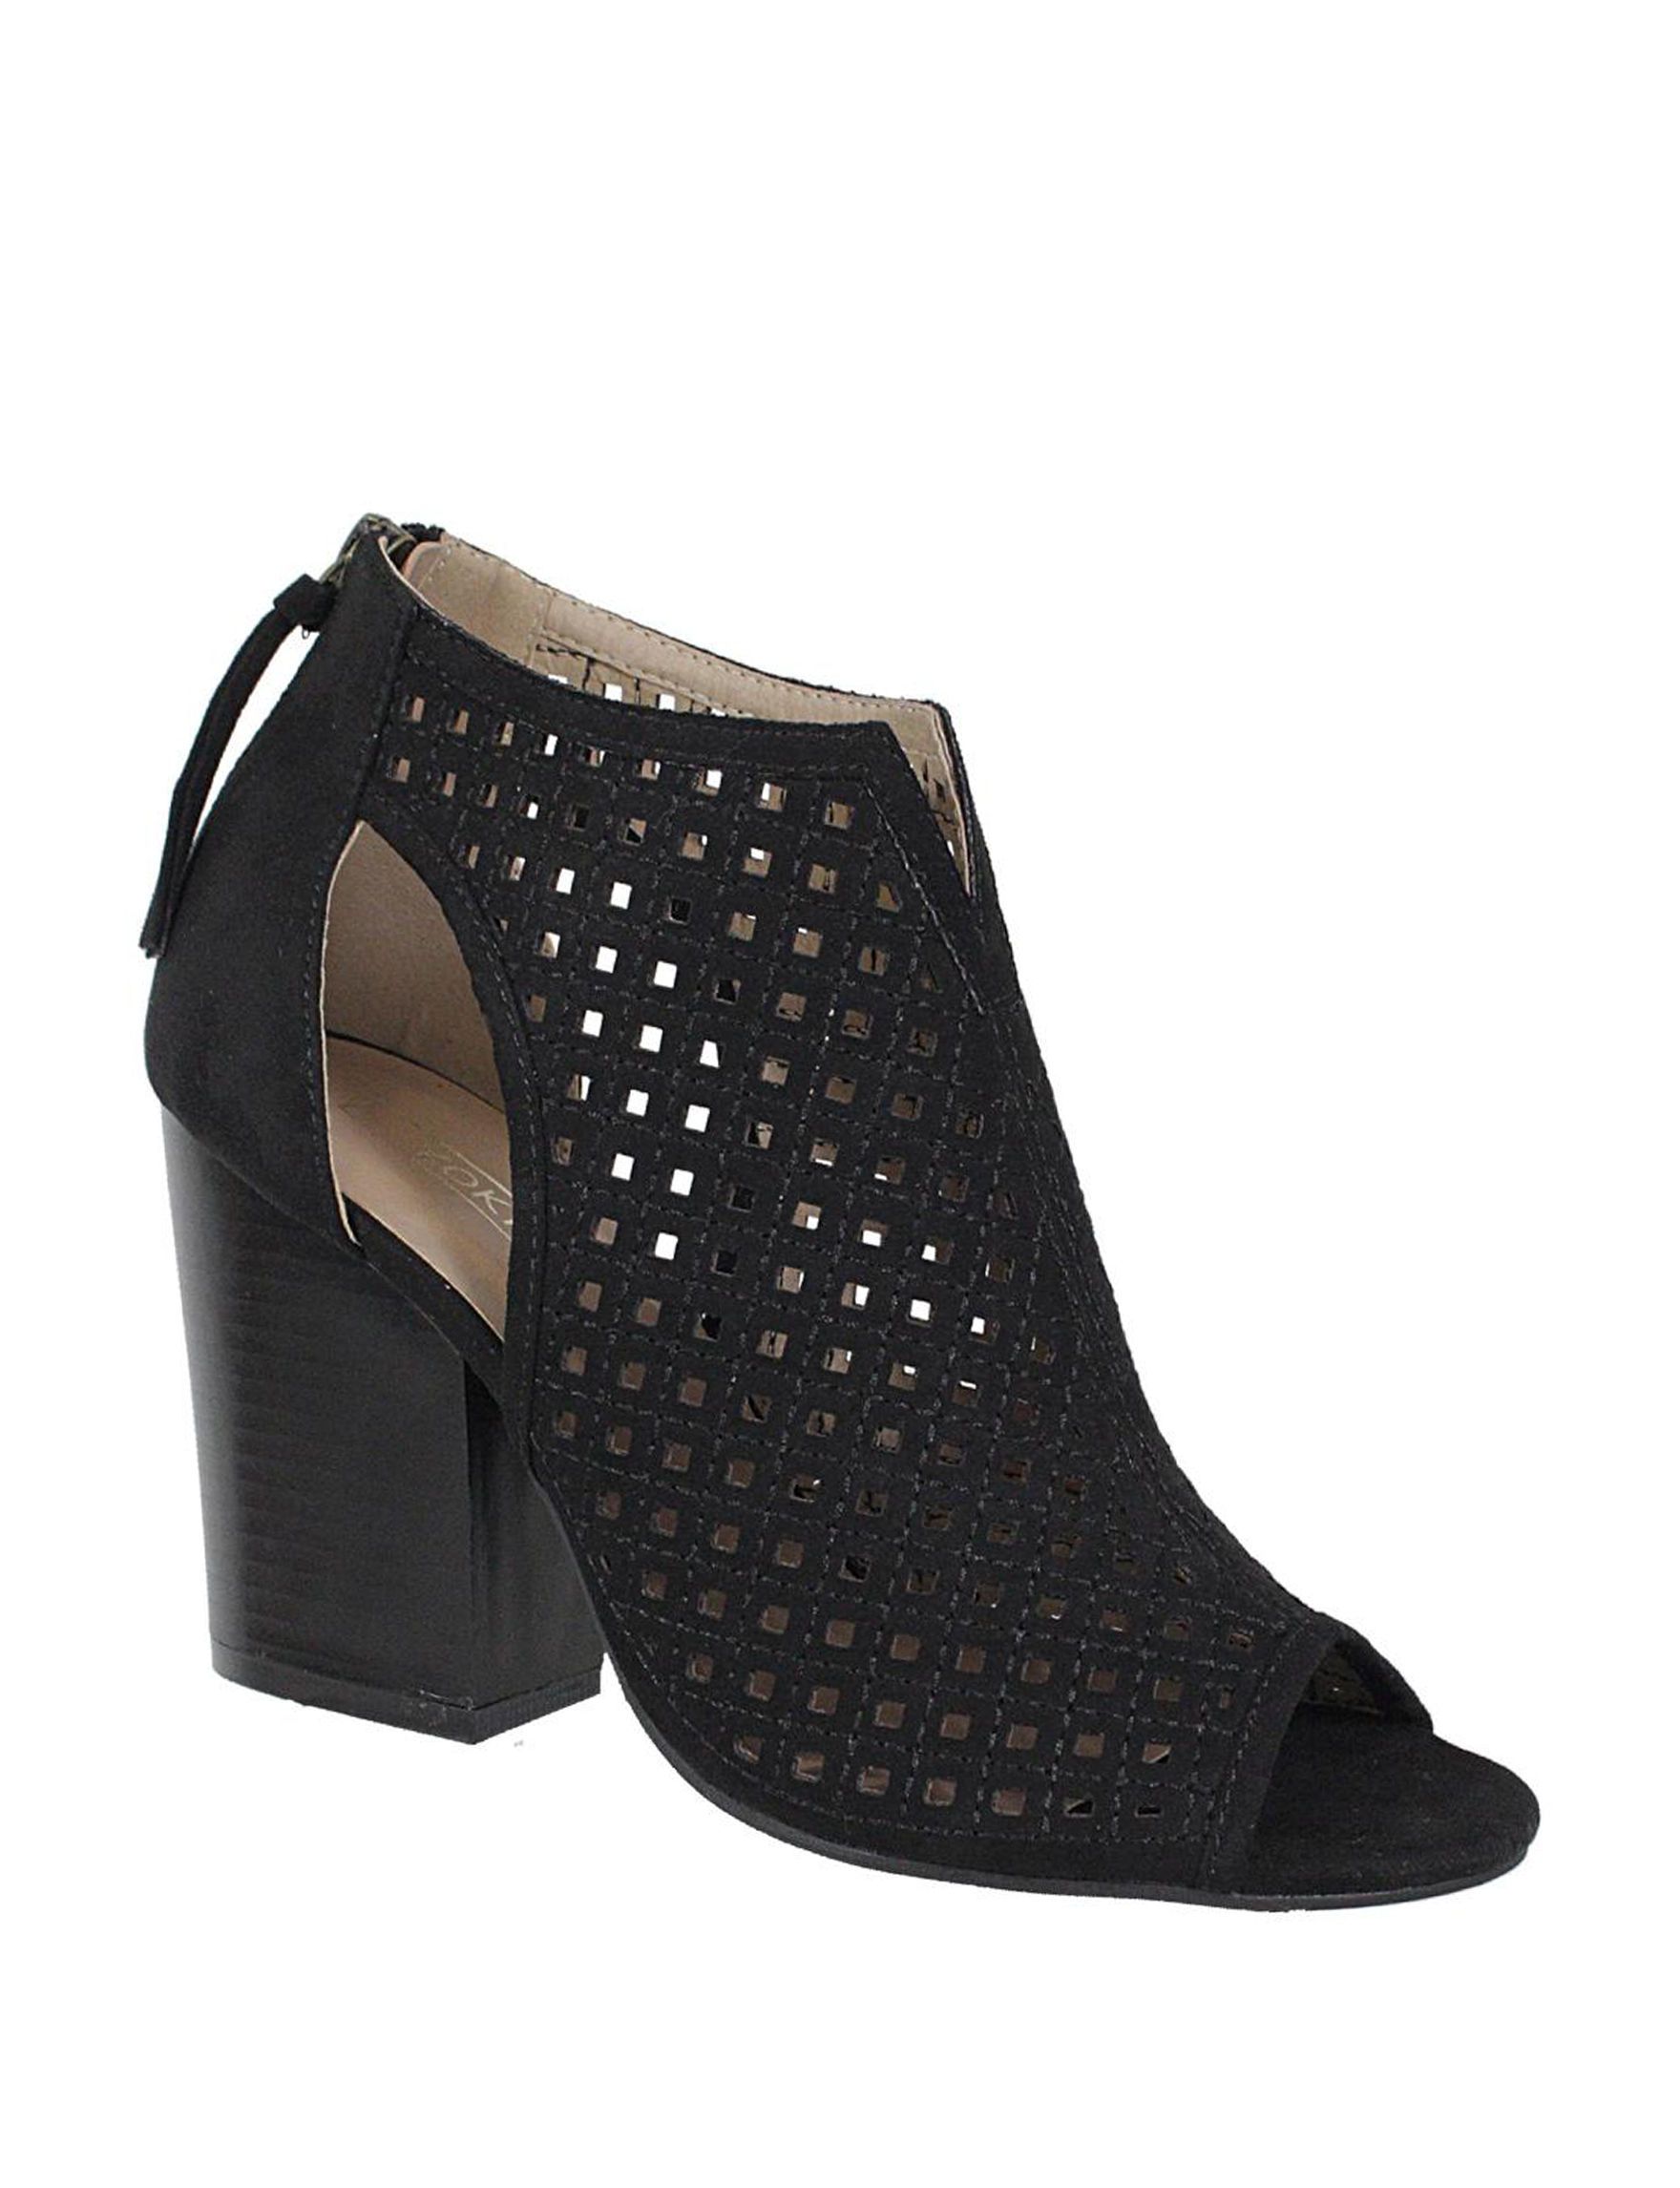 Yoki Black Ankle Boots & Booties